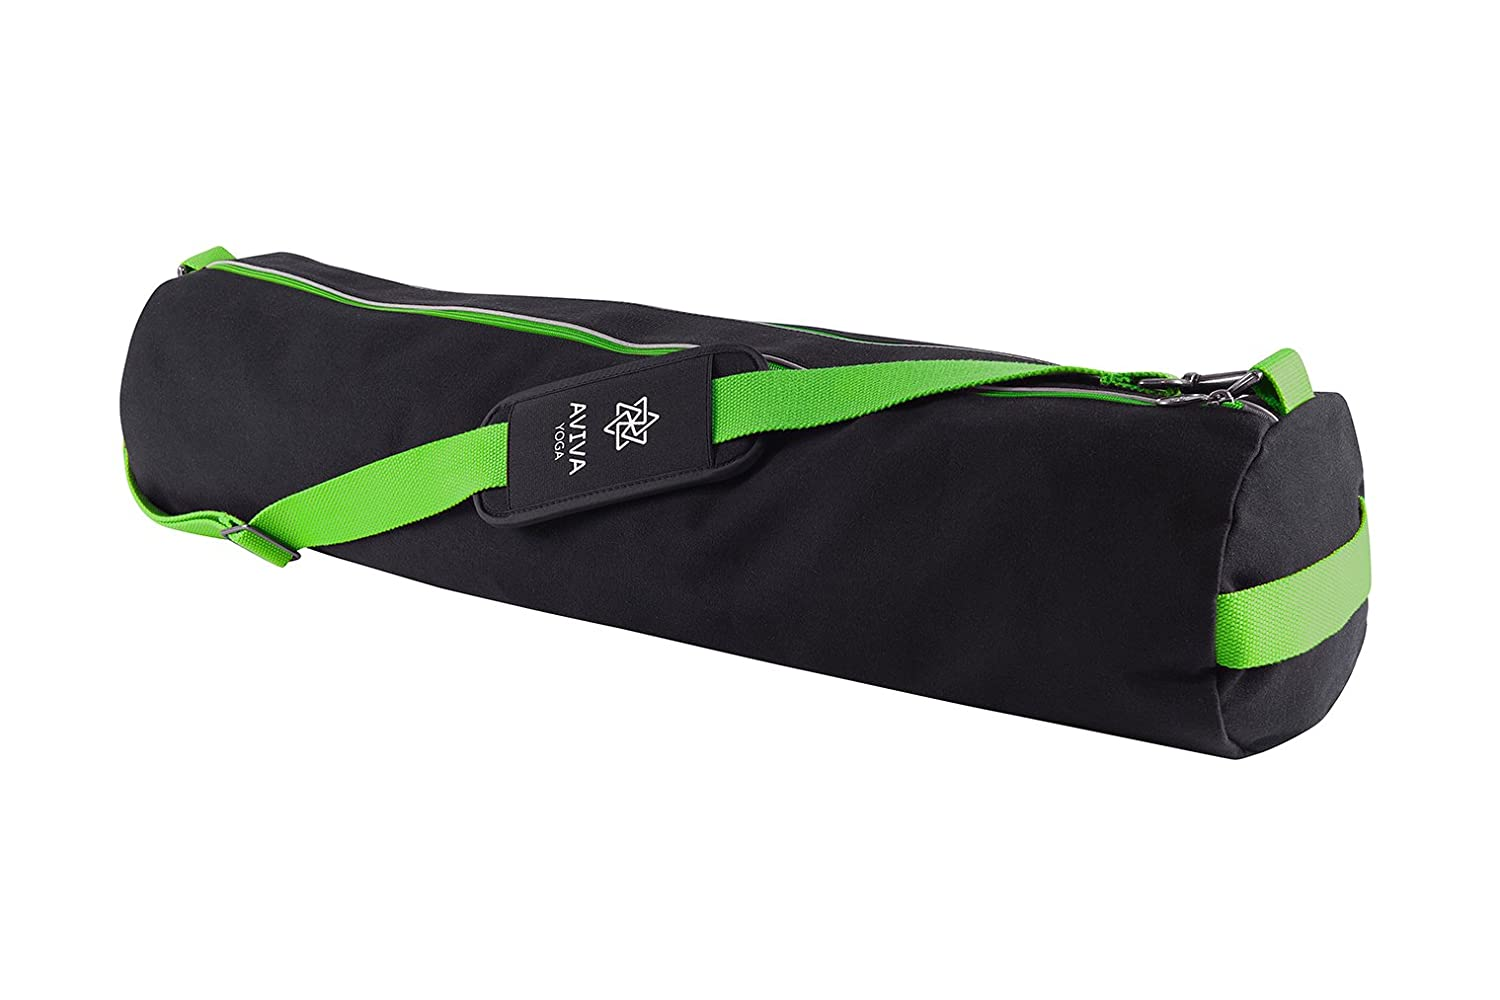 31b67678952f Yomad Yoga Mat Bag by AVIVA YOGA - Black Extra Large